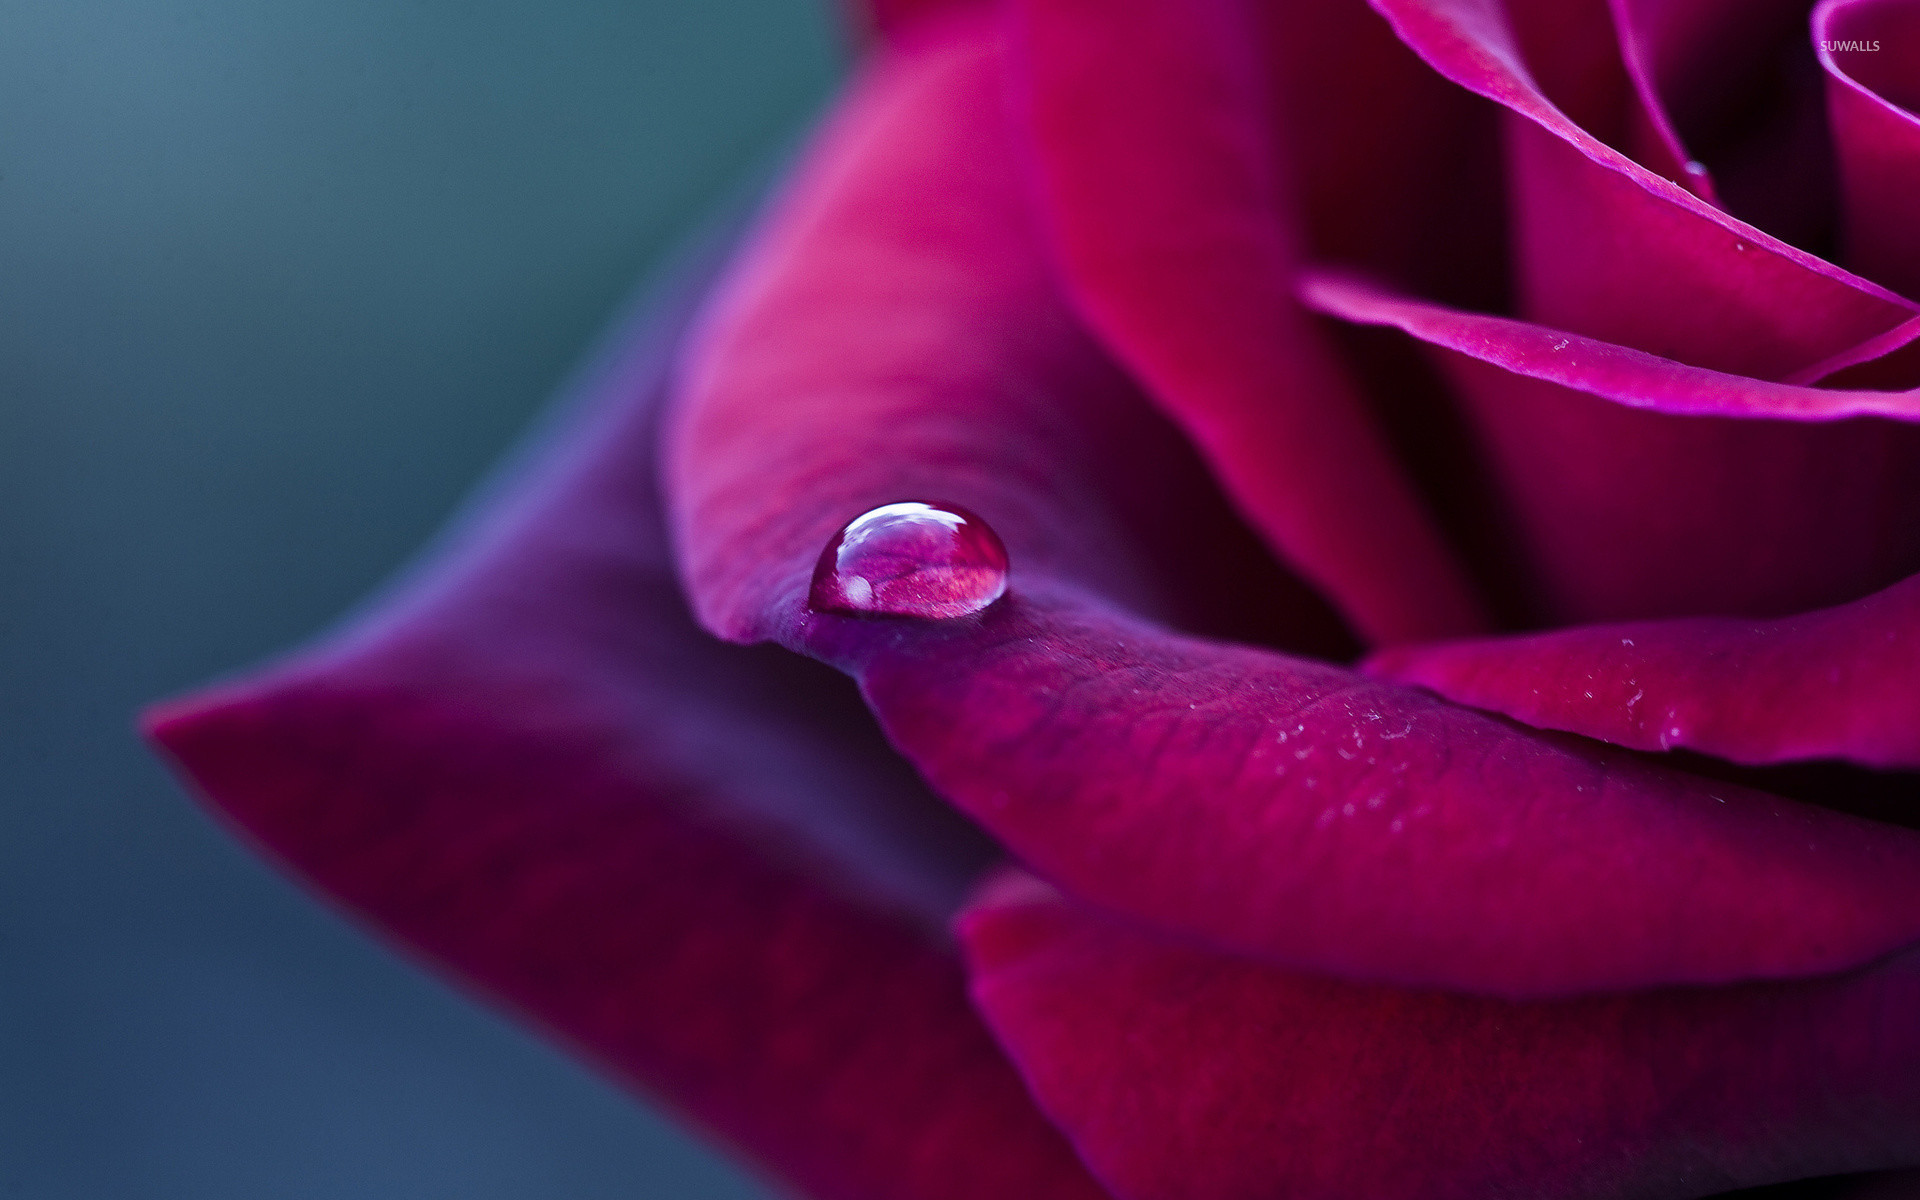 1920x1200 Water drop on a purple rose wallpaper - Flower wallpapers - #42045